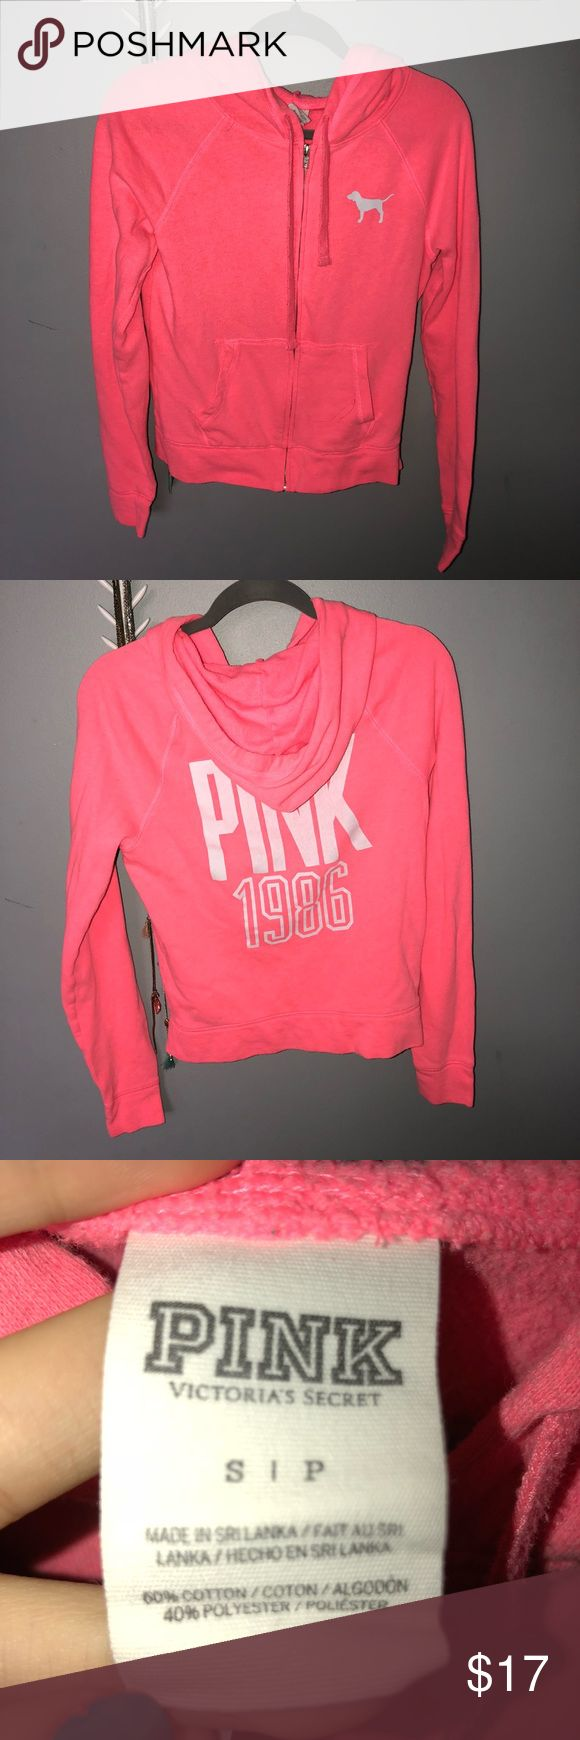 PINK Victoria's Secret Zip Up Hoodie Bright Pink with a hint of Orange • Leave an Offer! • Bundle and Save! • Feel Free to Ask Questions! PINK Victoria's Secret Tops Sweatshirts & Hoodies